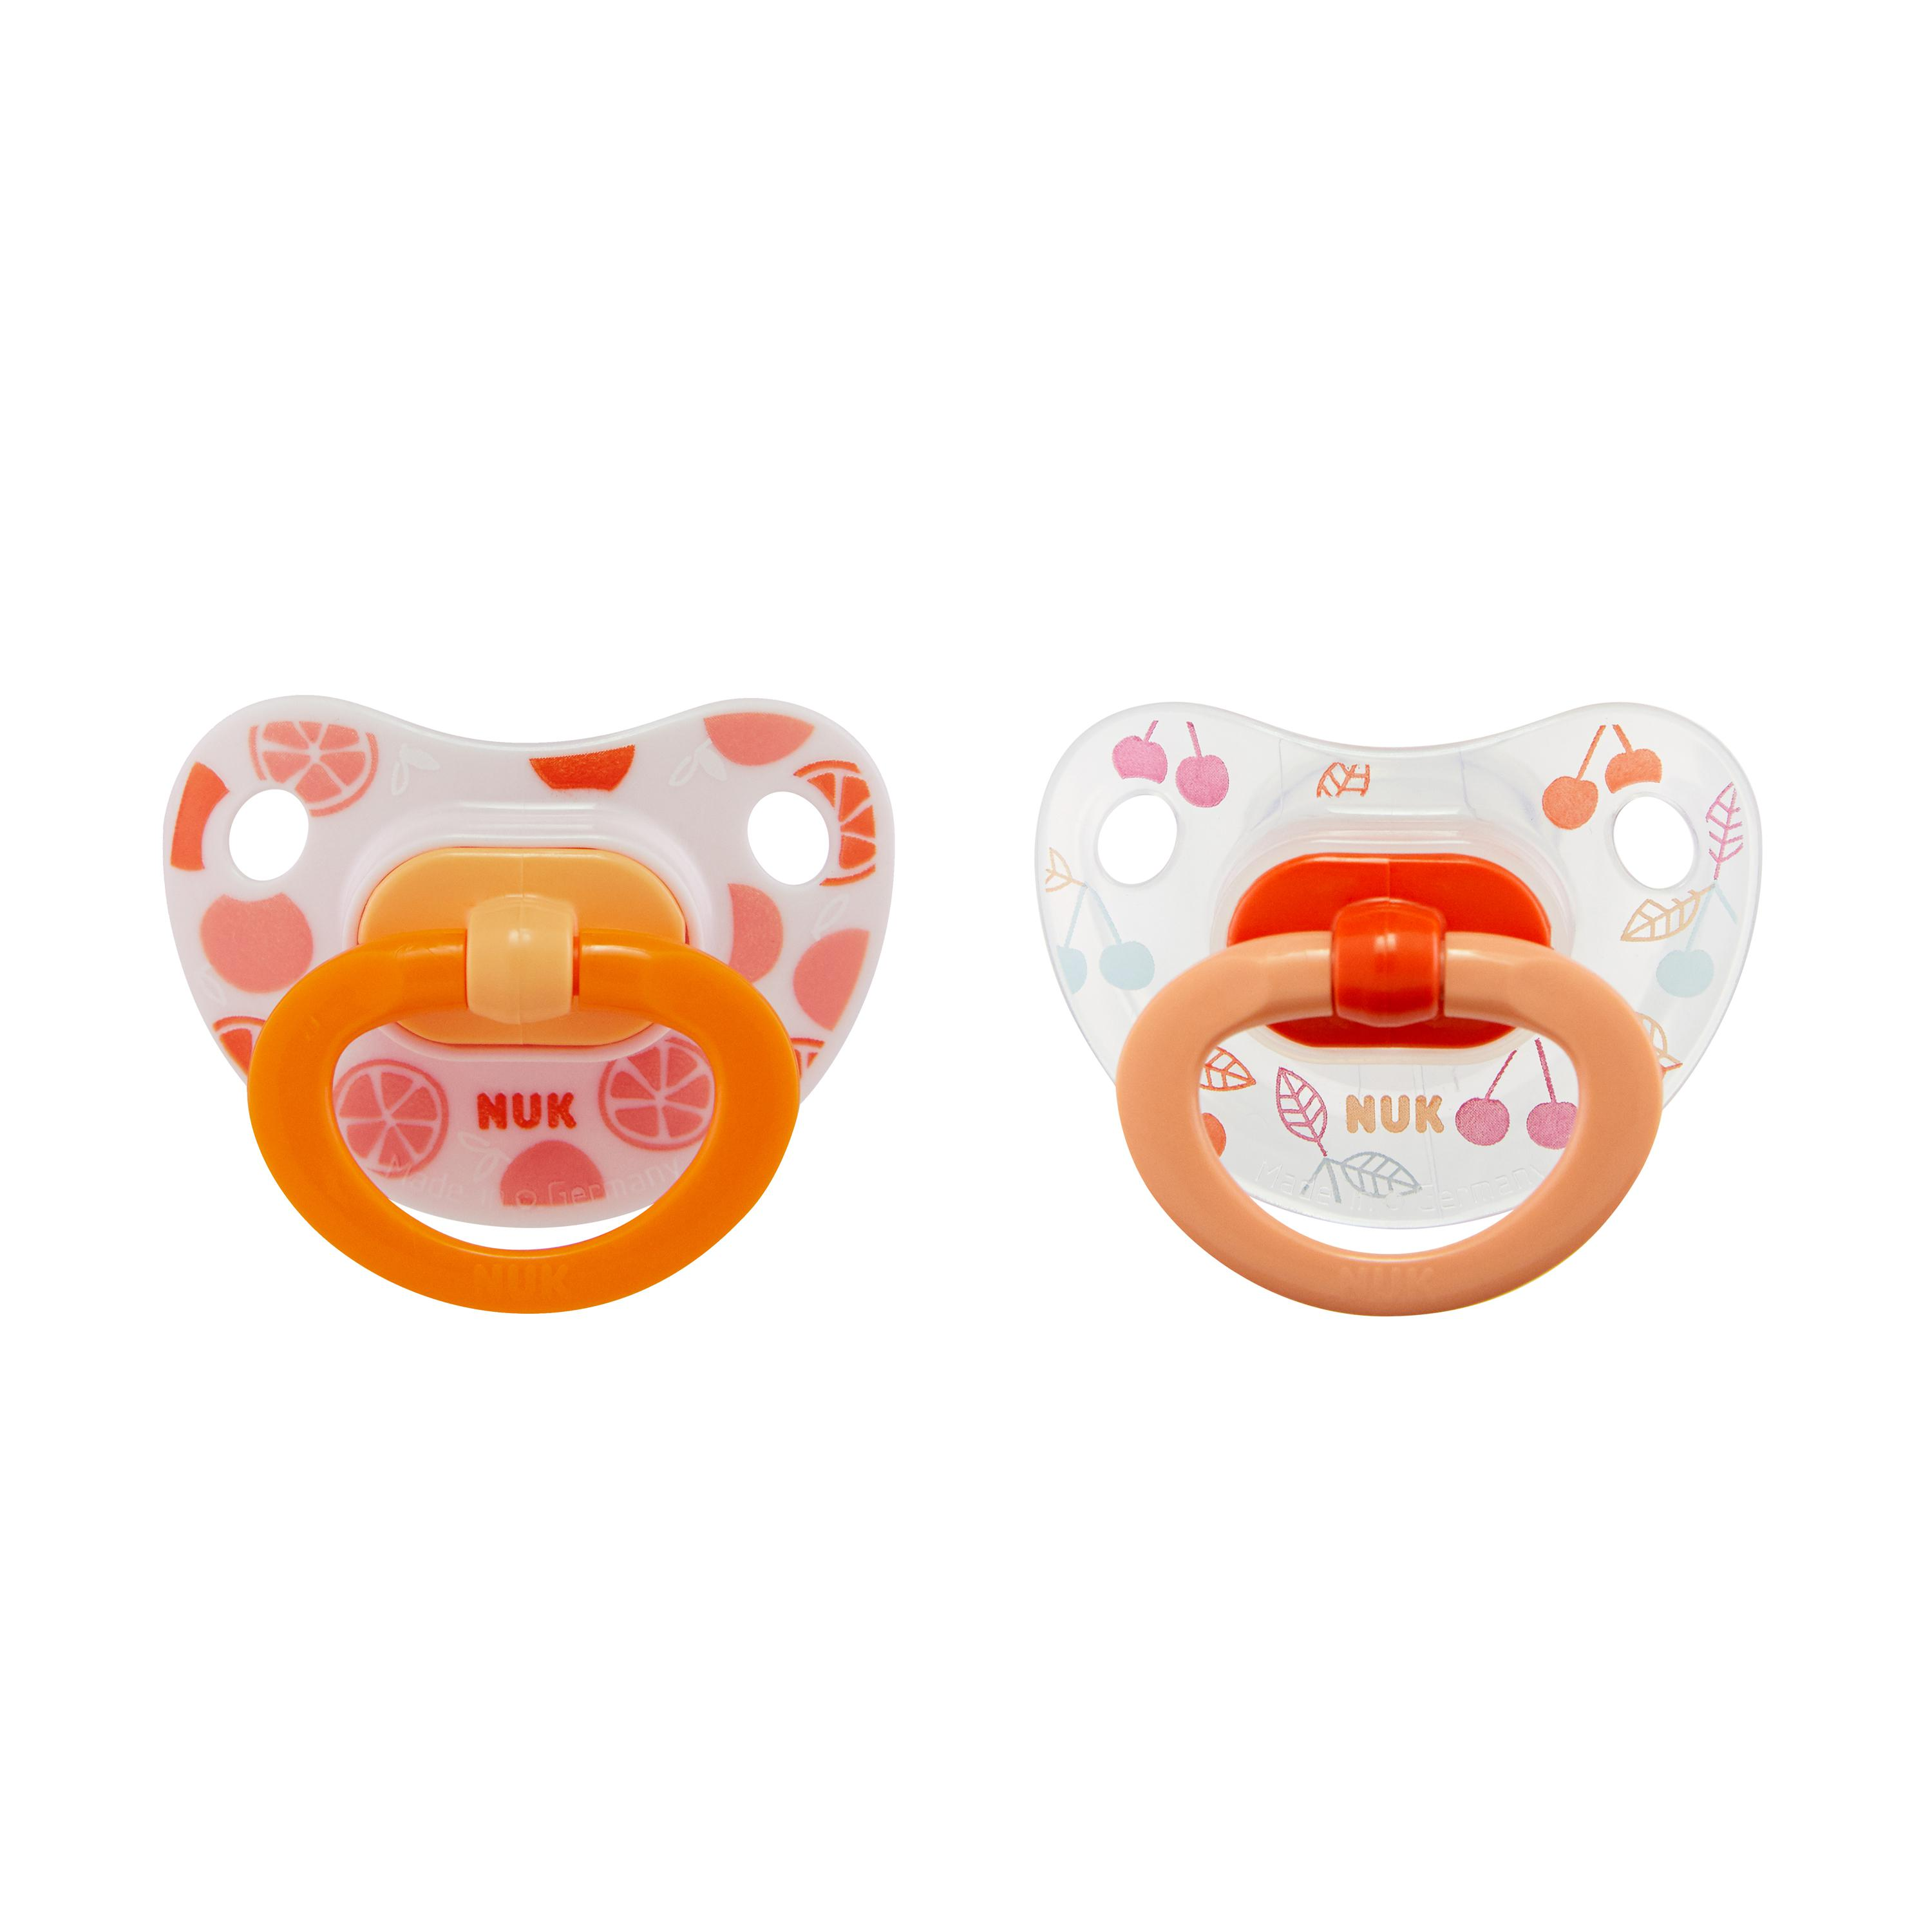 NUK® Orthodontic Pacifiers, 6-18 Months, 2-Pack Product Image 2 of 7